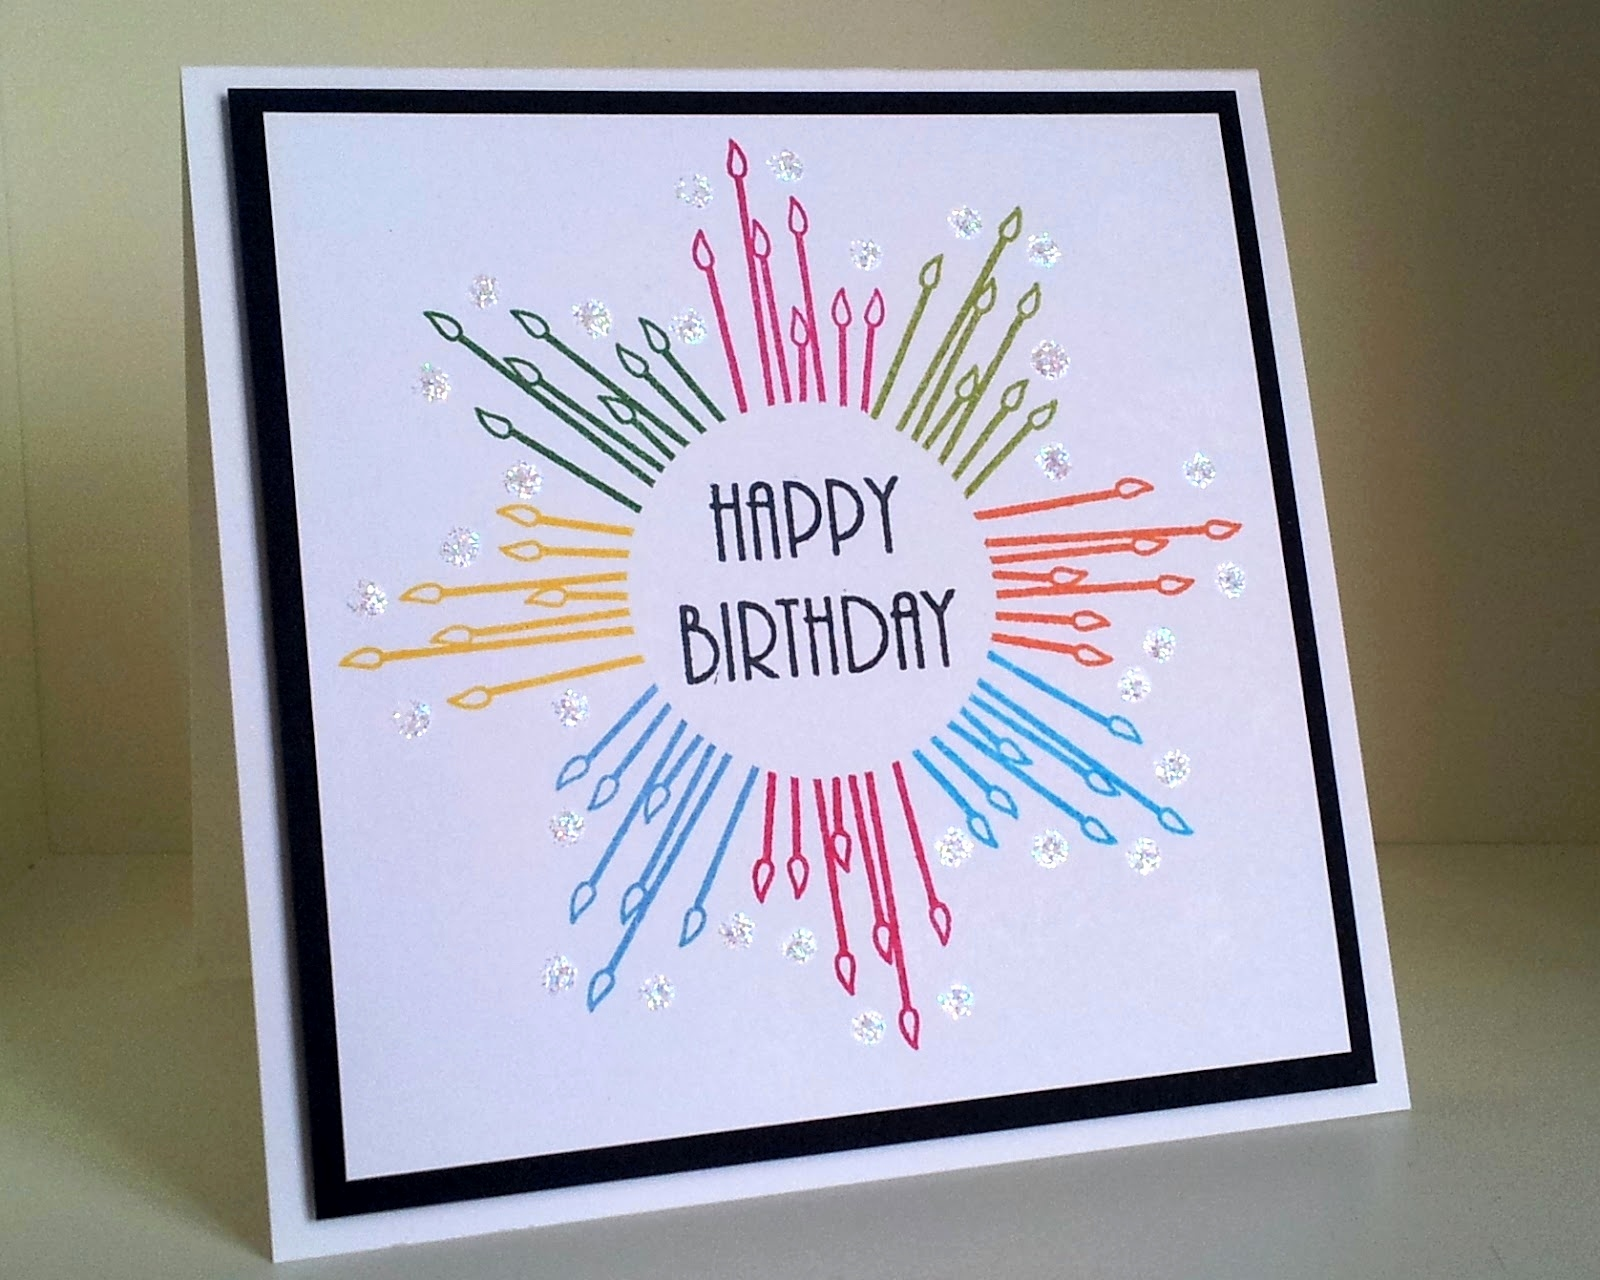 handmade birthday card ideas ; creative-handmade-birthday-card-ideas-lovely-creative-ideas-for-birthday-card-making-inspirational-card-of-creative-handmade-birthday-card-ideas